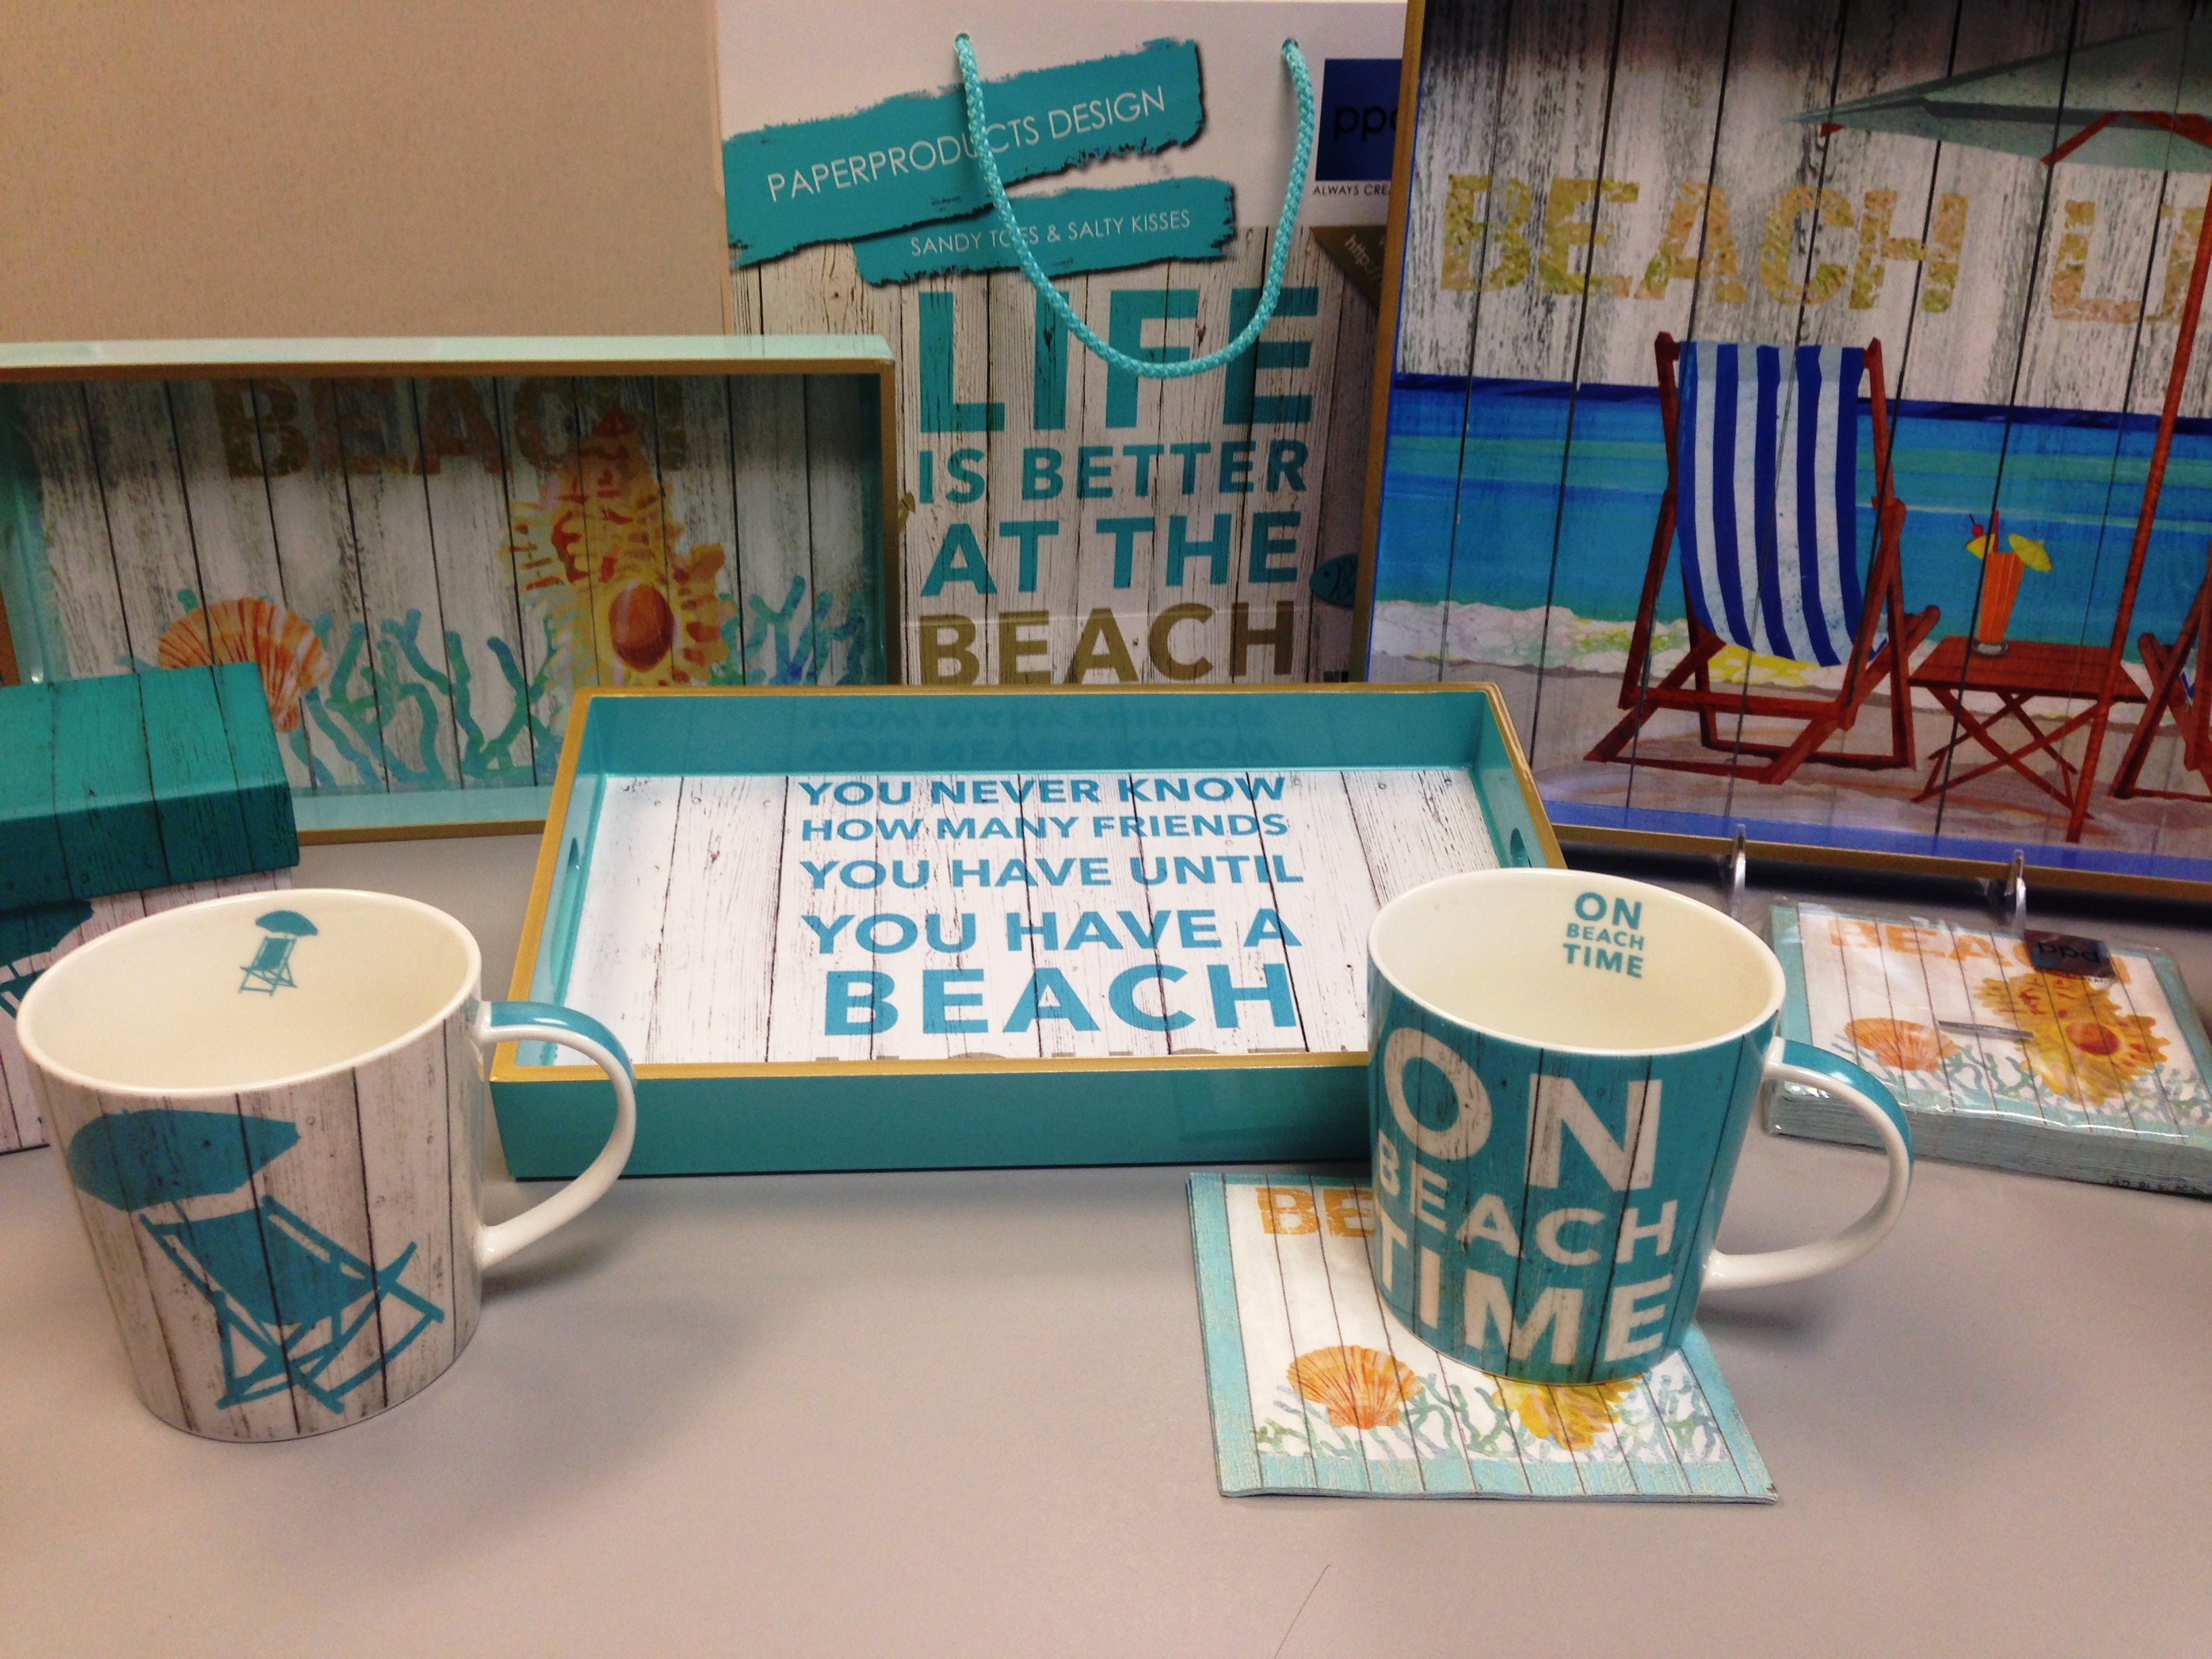 Life Is Better At The Beach Cabana Beach Chair; Have A Beach House; Life Is  Better;